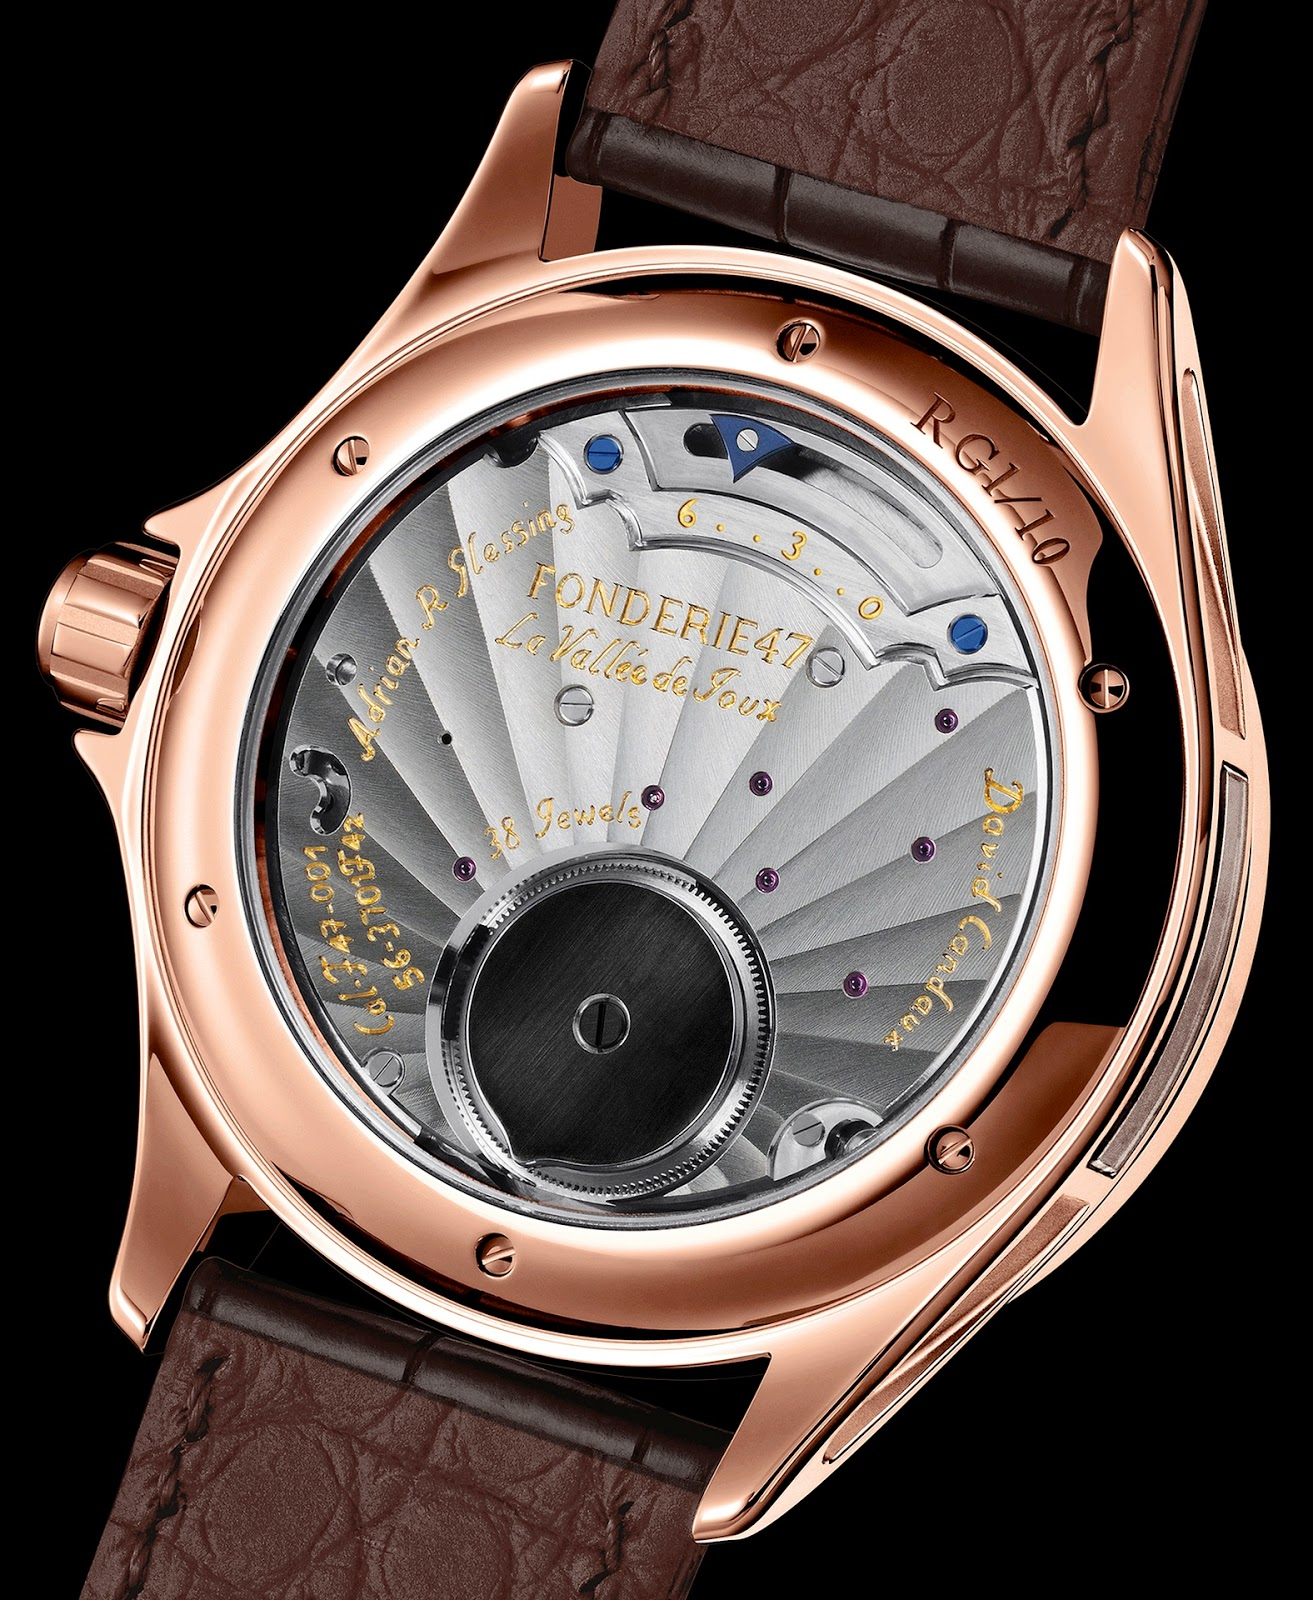 calibre F47-001 Fonderie 47 Inversion Principle